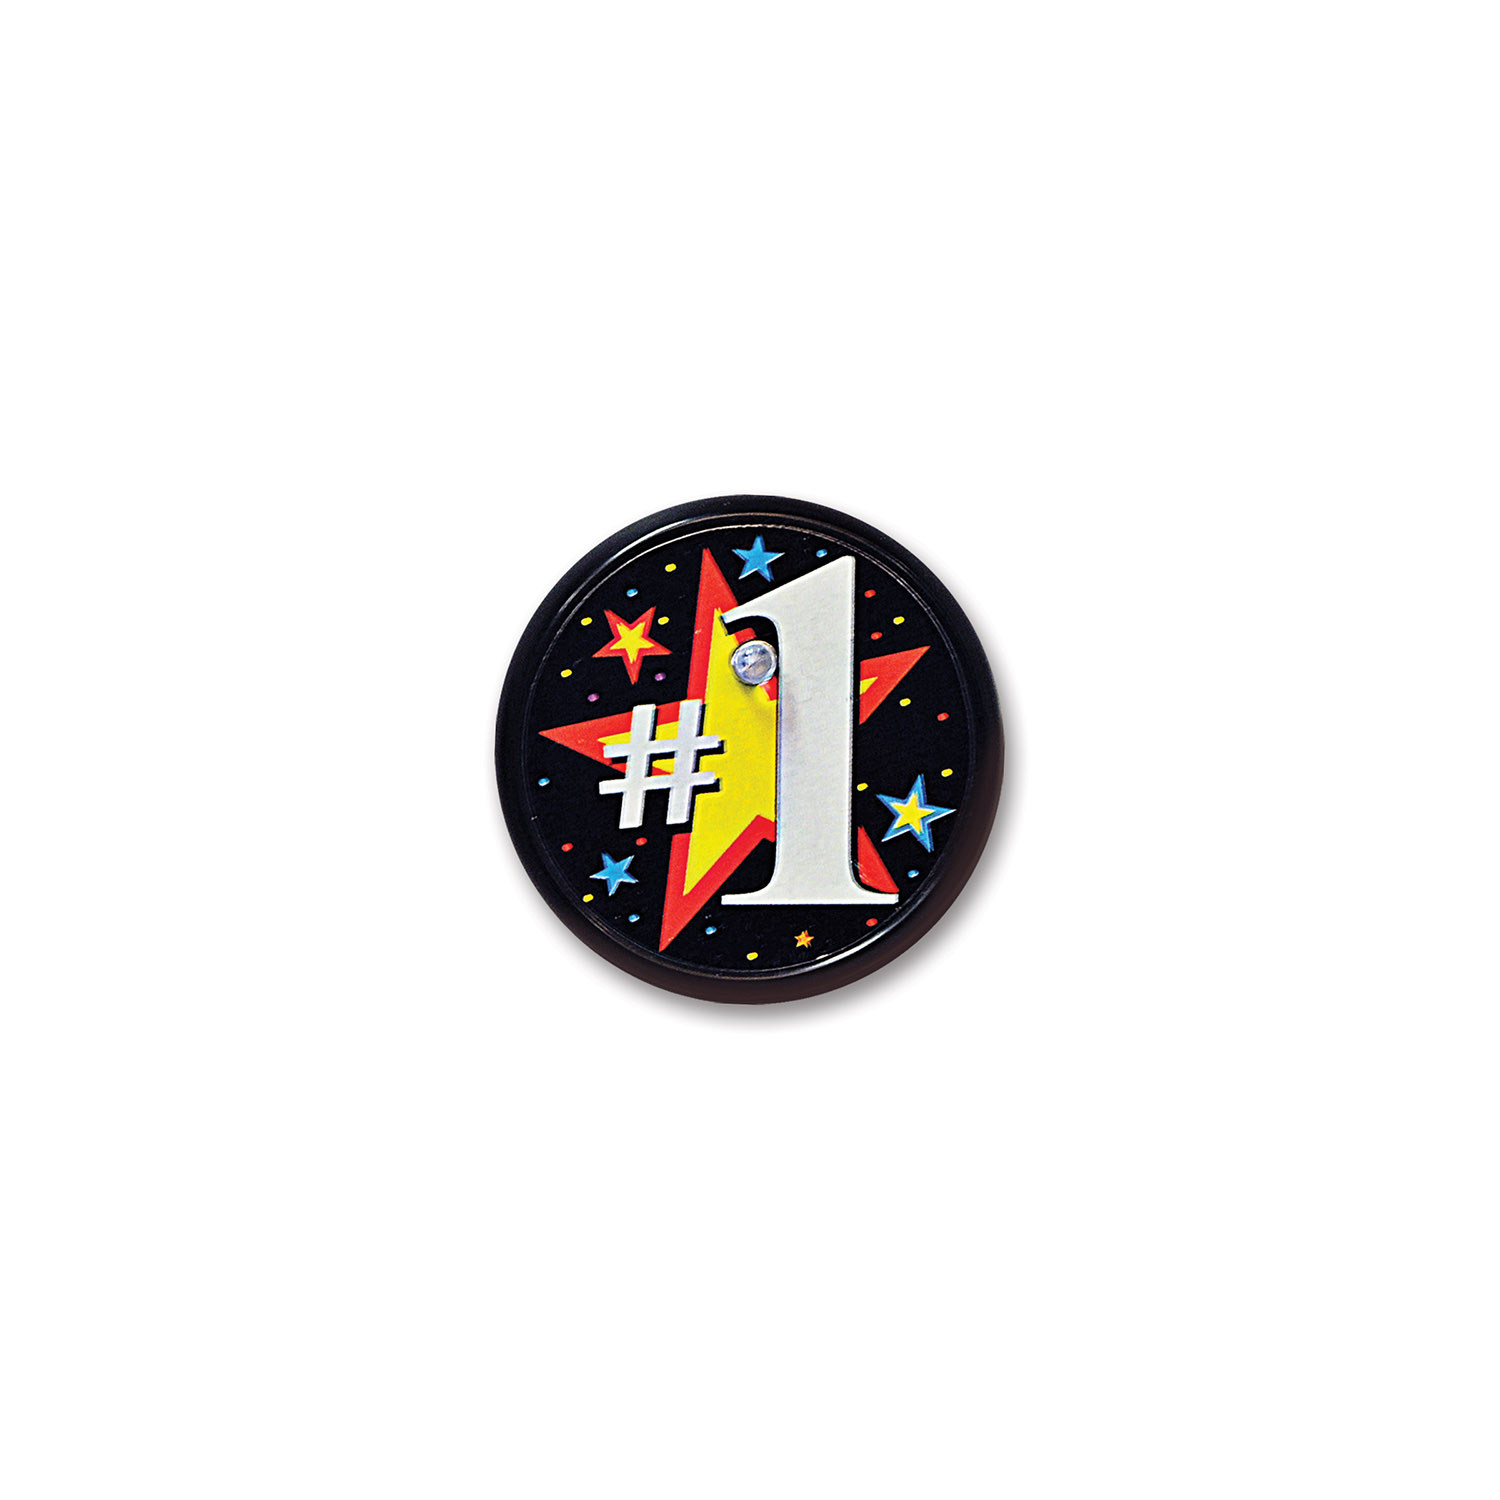 #1 Blinking Button (Pack of 6) #1, number one, button, blinking, Sports, educational